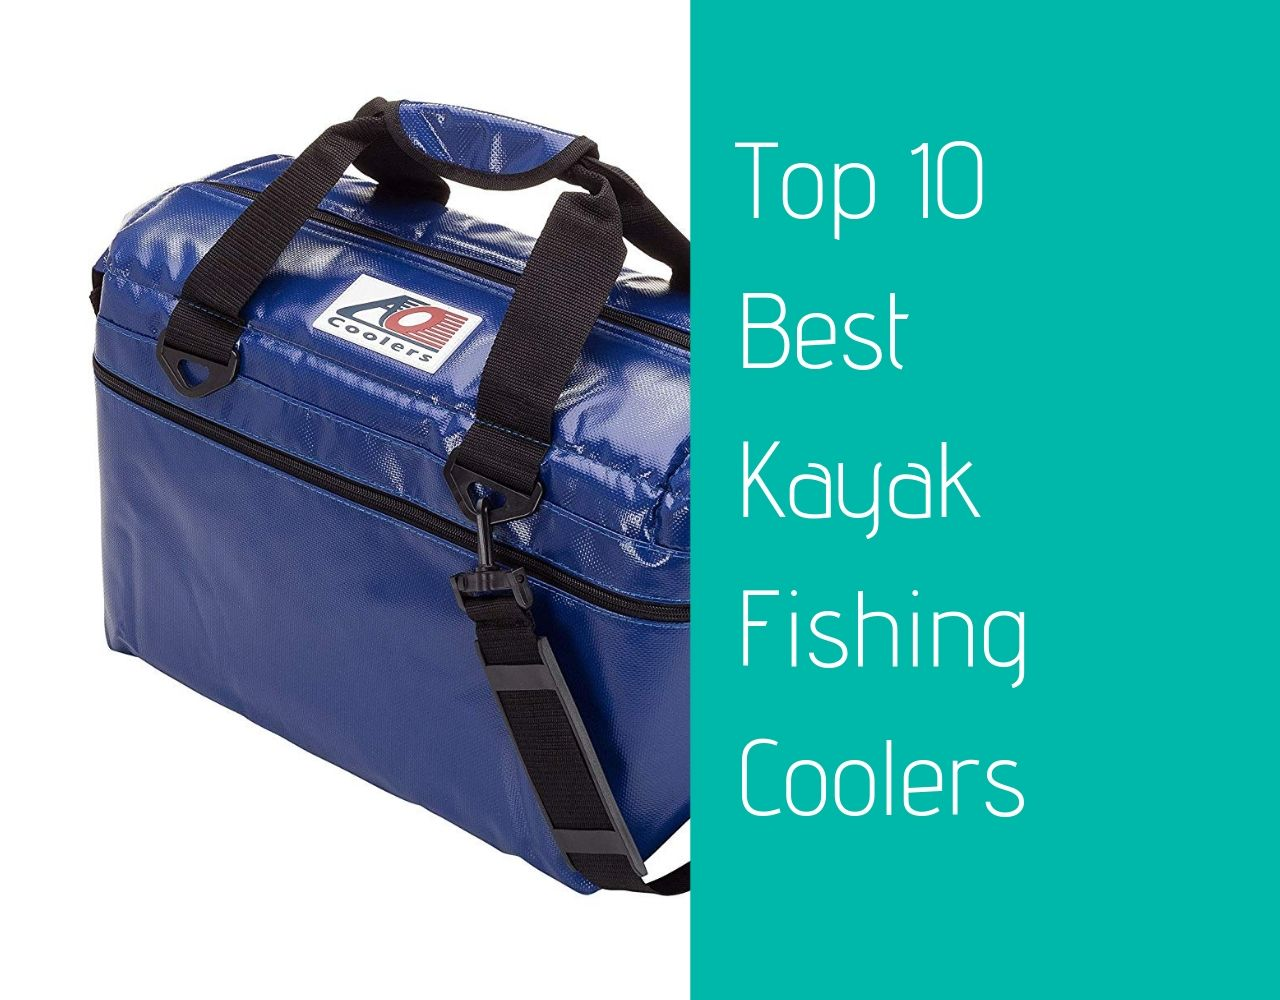 Top 10 Best Kayak Fishing Coolers